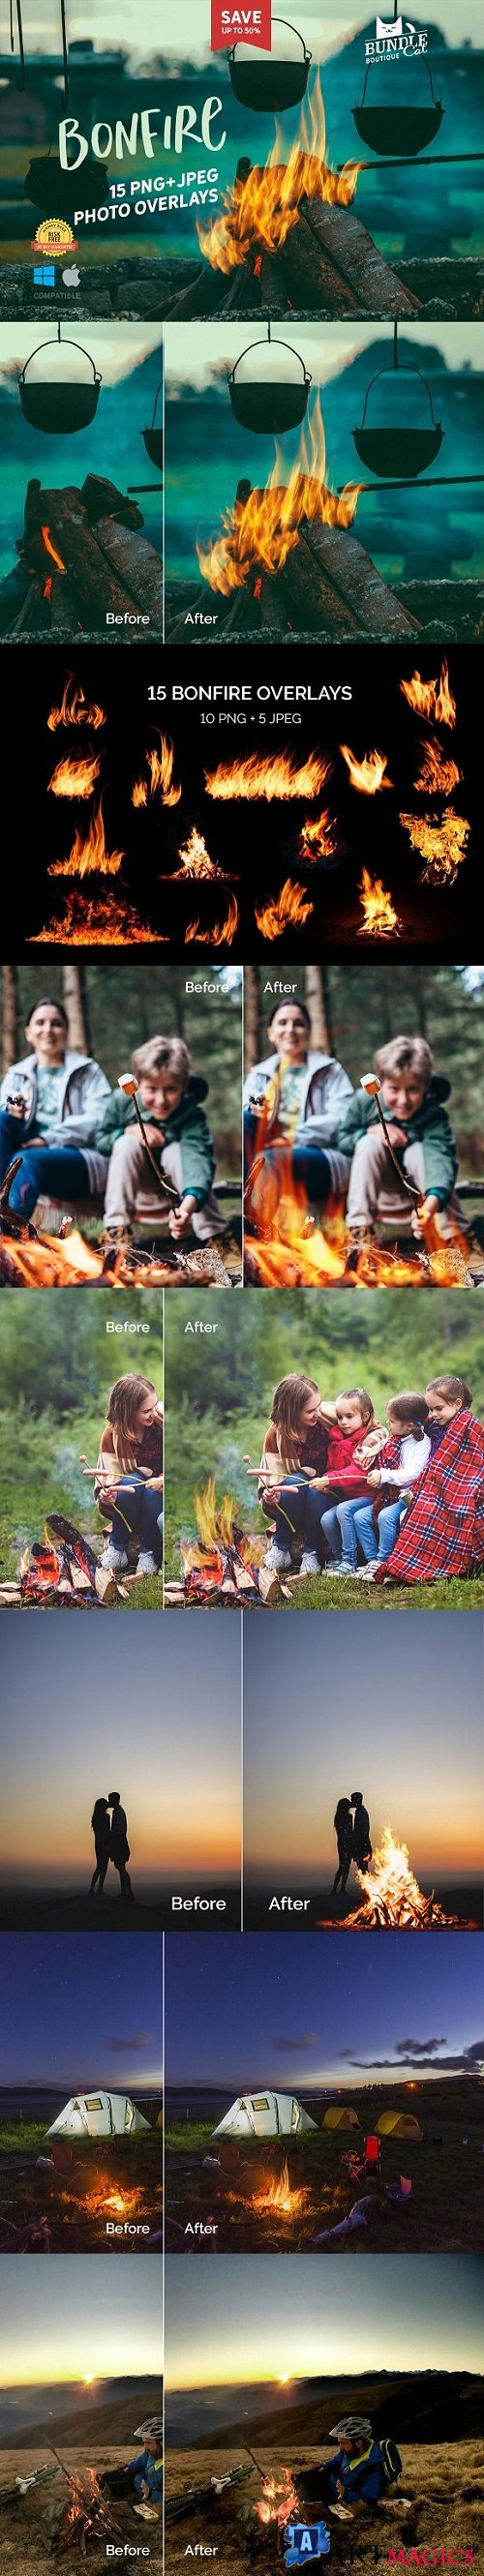 +15 Bonfire Photo Overlays - 2250655